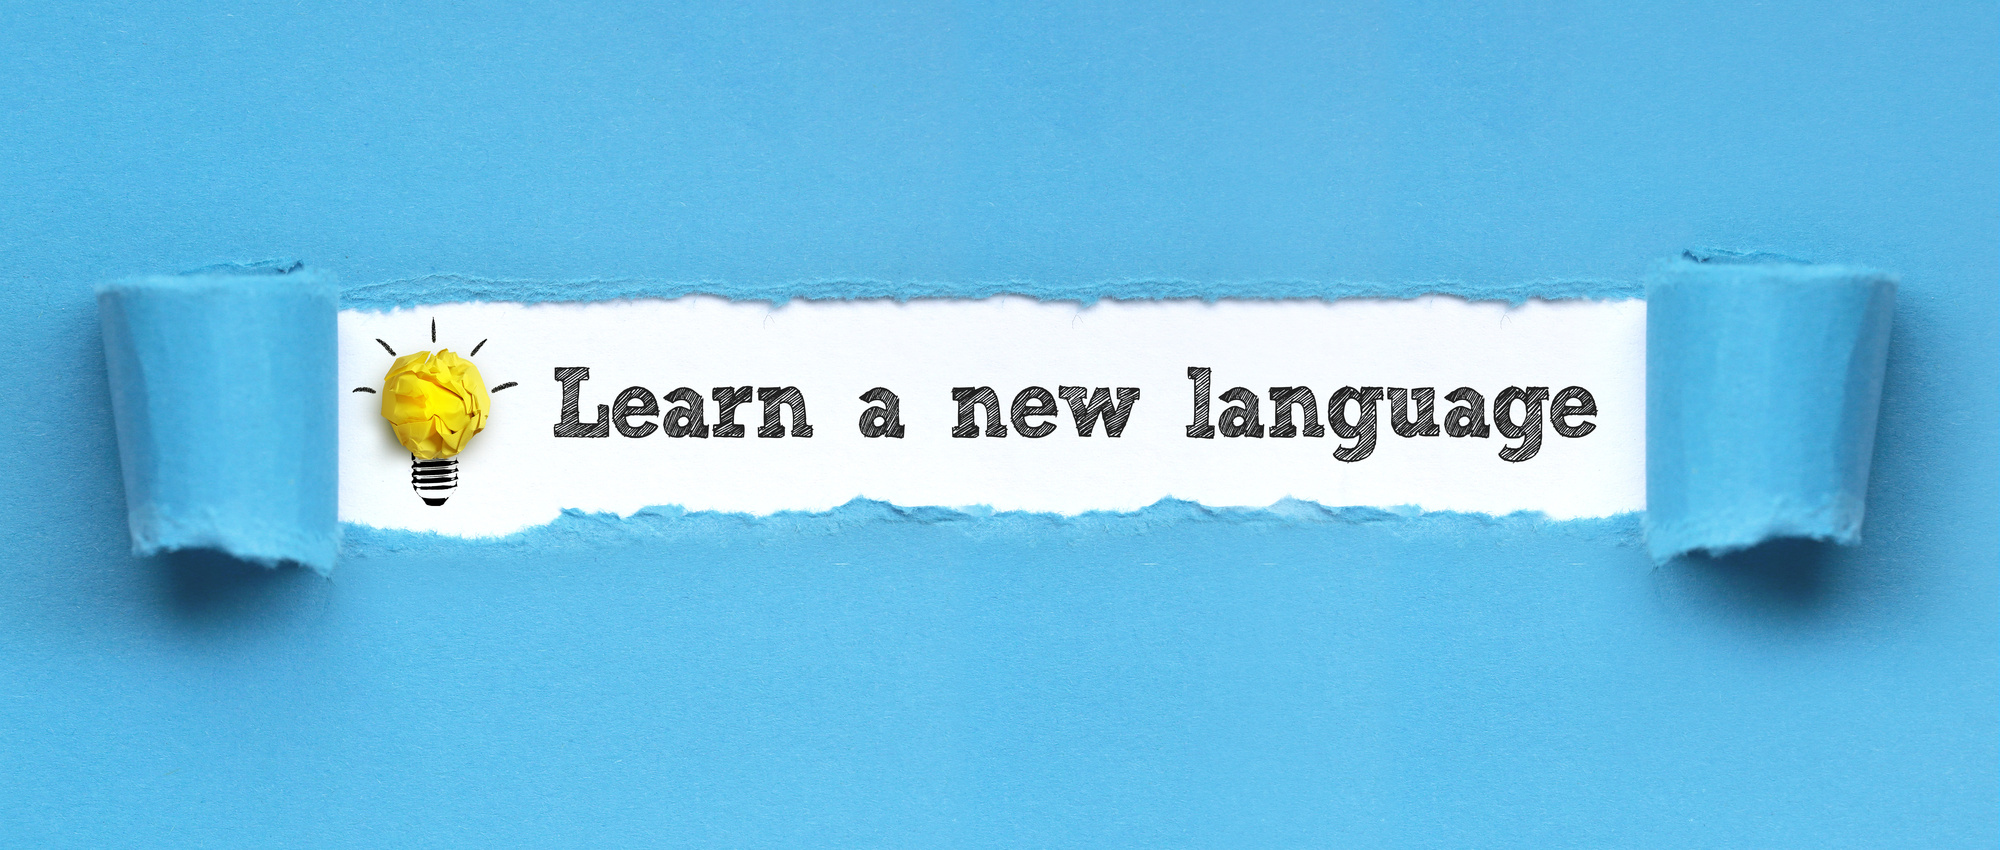 learn a new language text